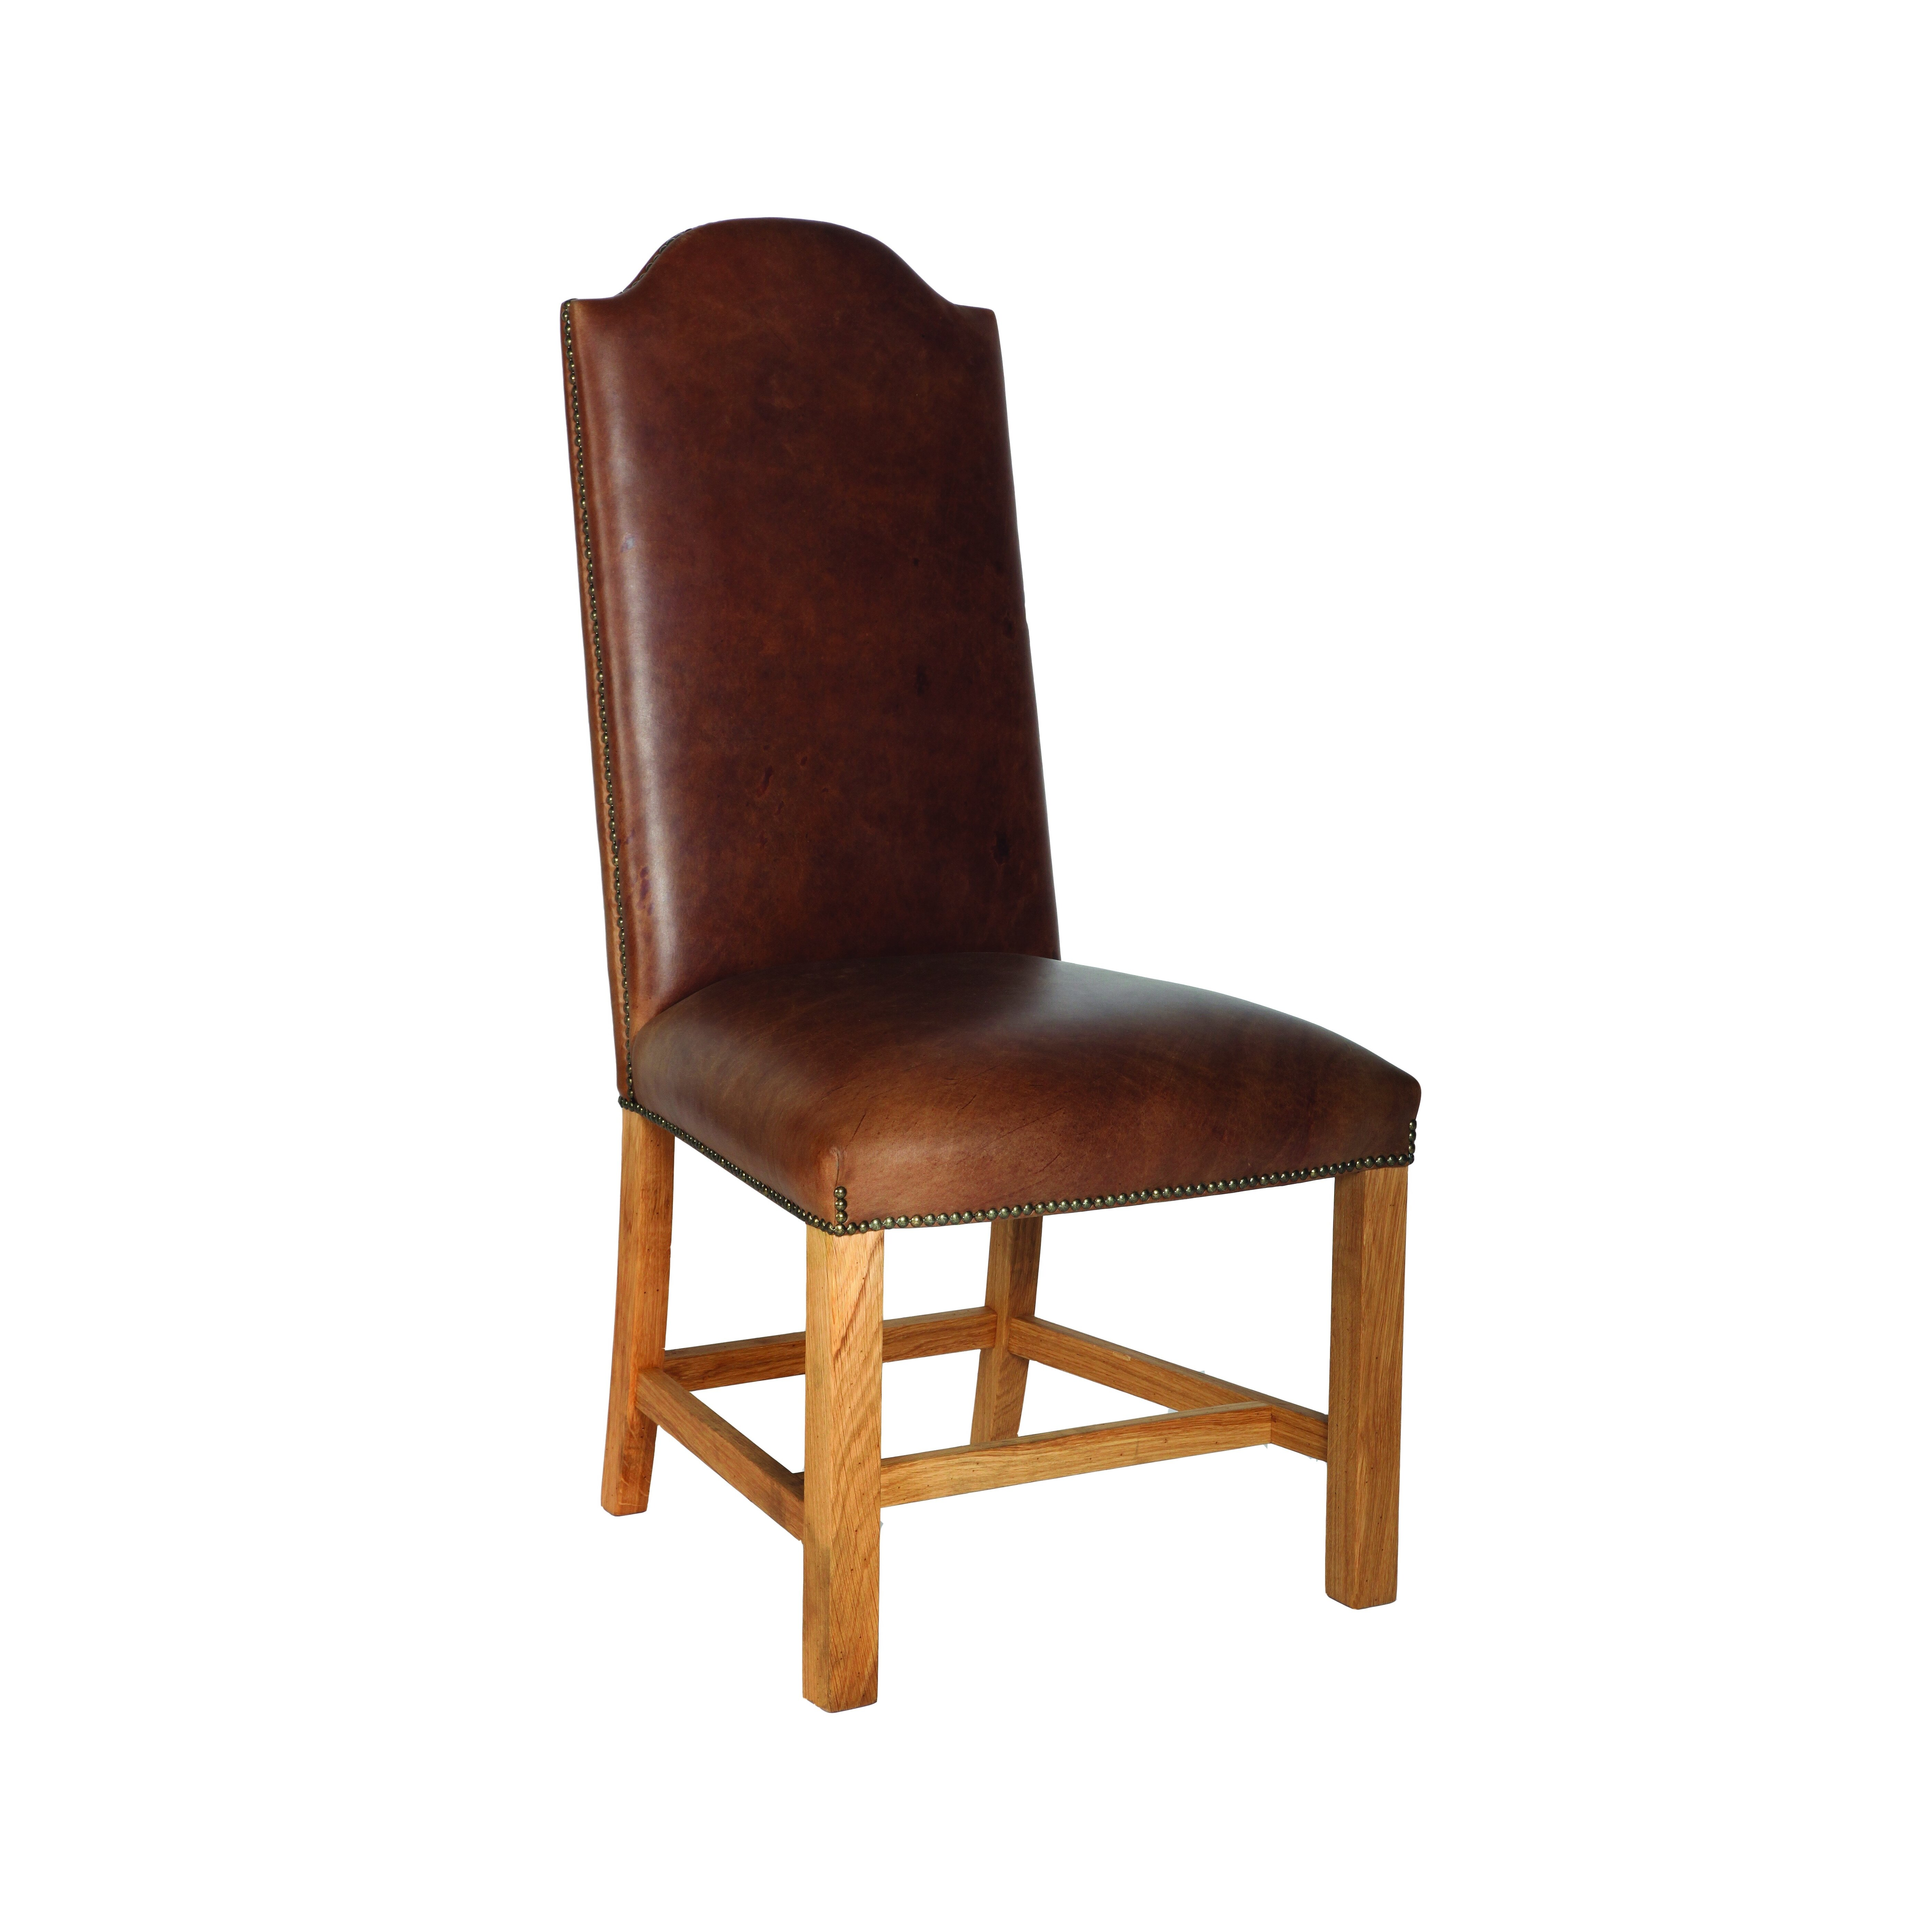 Upholstered Dining Room Chair: Carlton Furniture Chateau Solid Oak Upholstered Dining